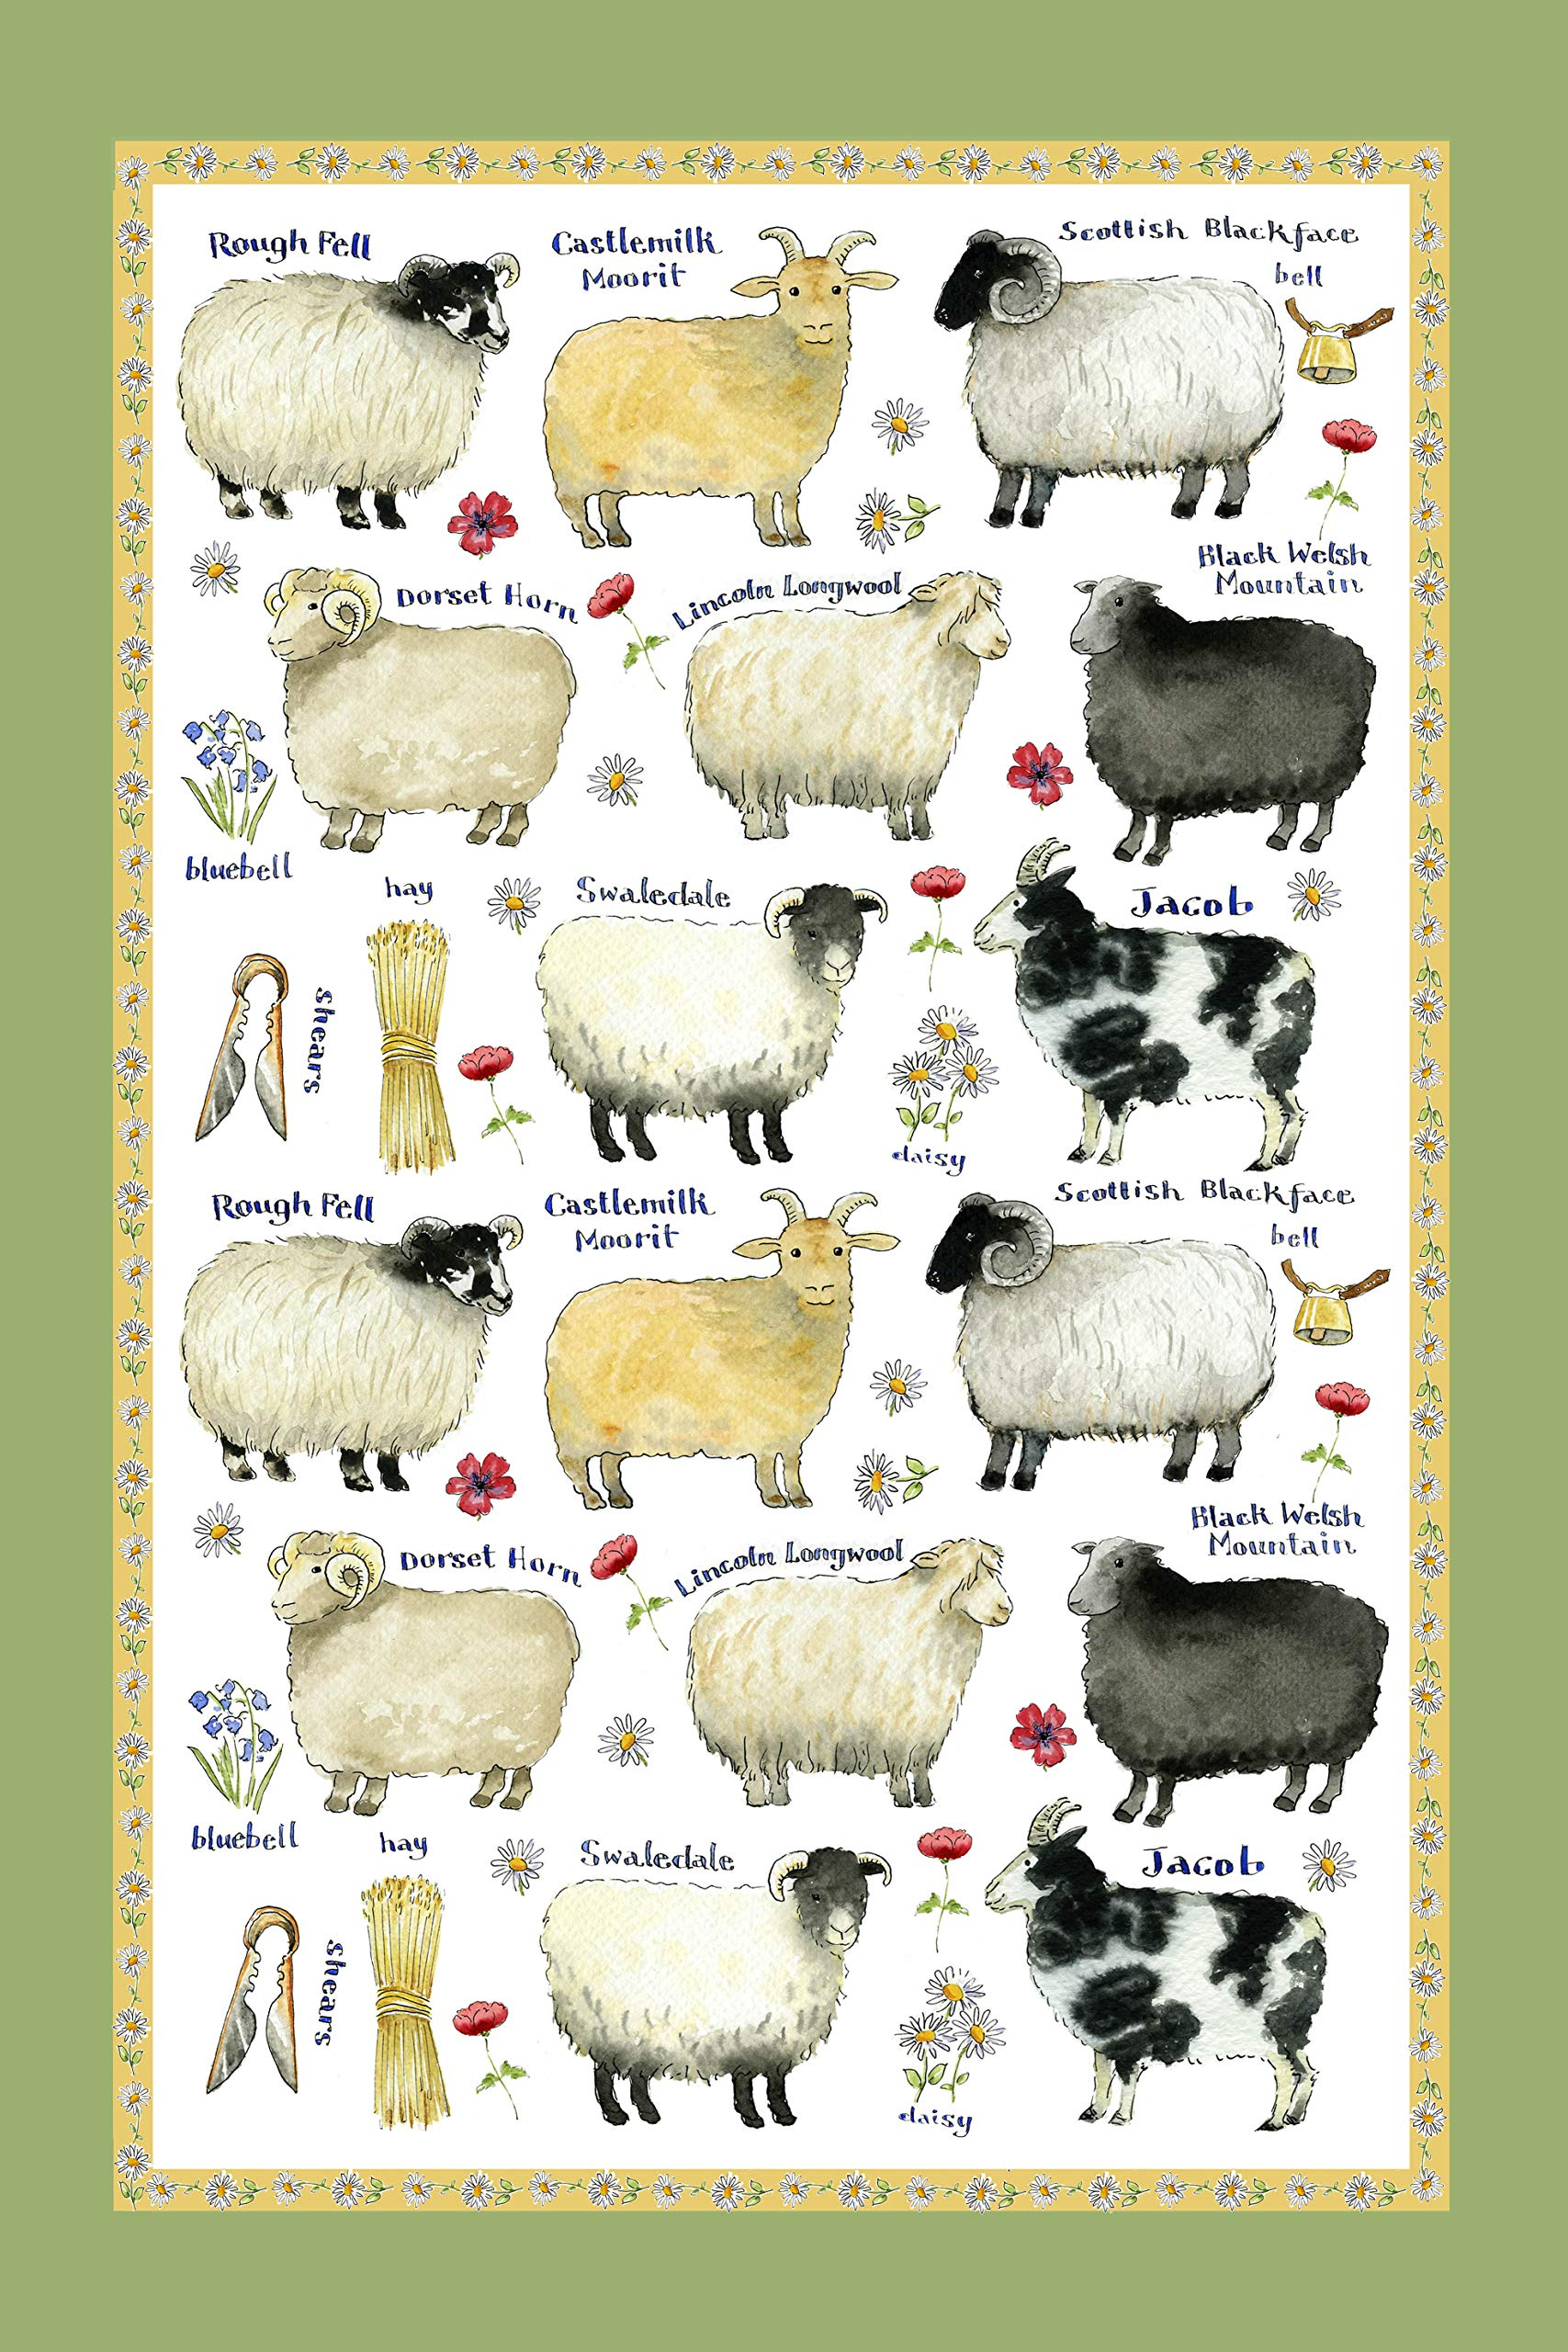 Samuel Lamont Linen Union Tea Towel Sheep Breeds Print